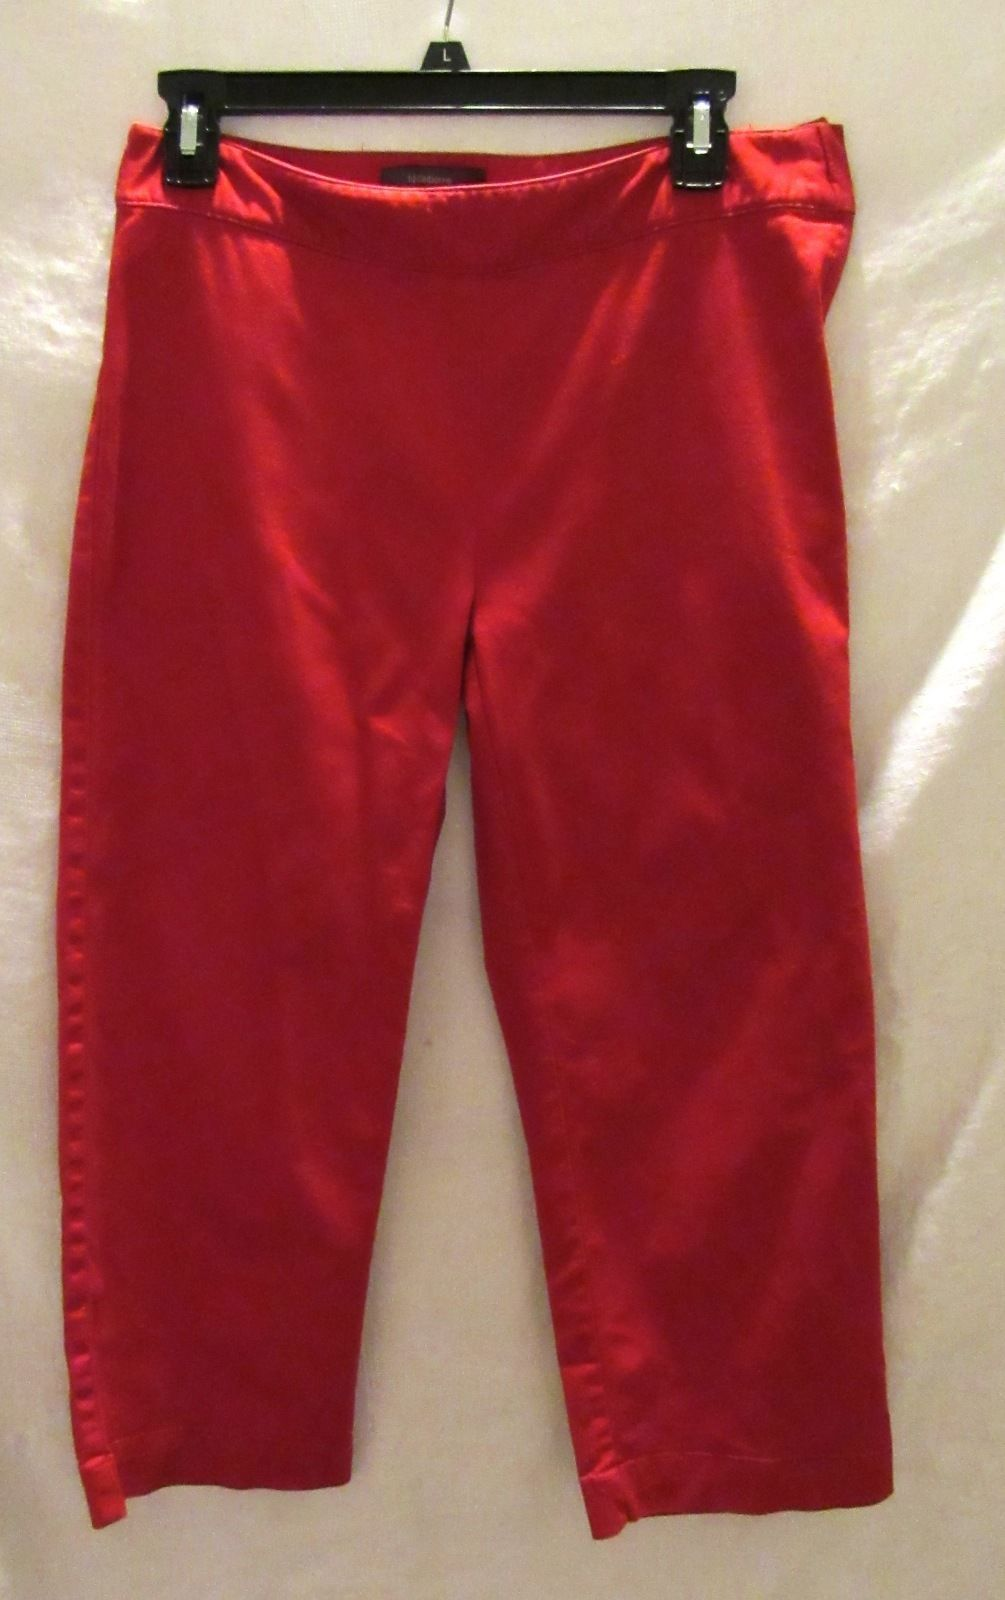 Liz Claiborne Red Audra Capri/Cropped Cotton/Spandex Pants Inseam 22 Size: 4